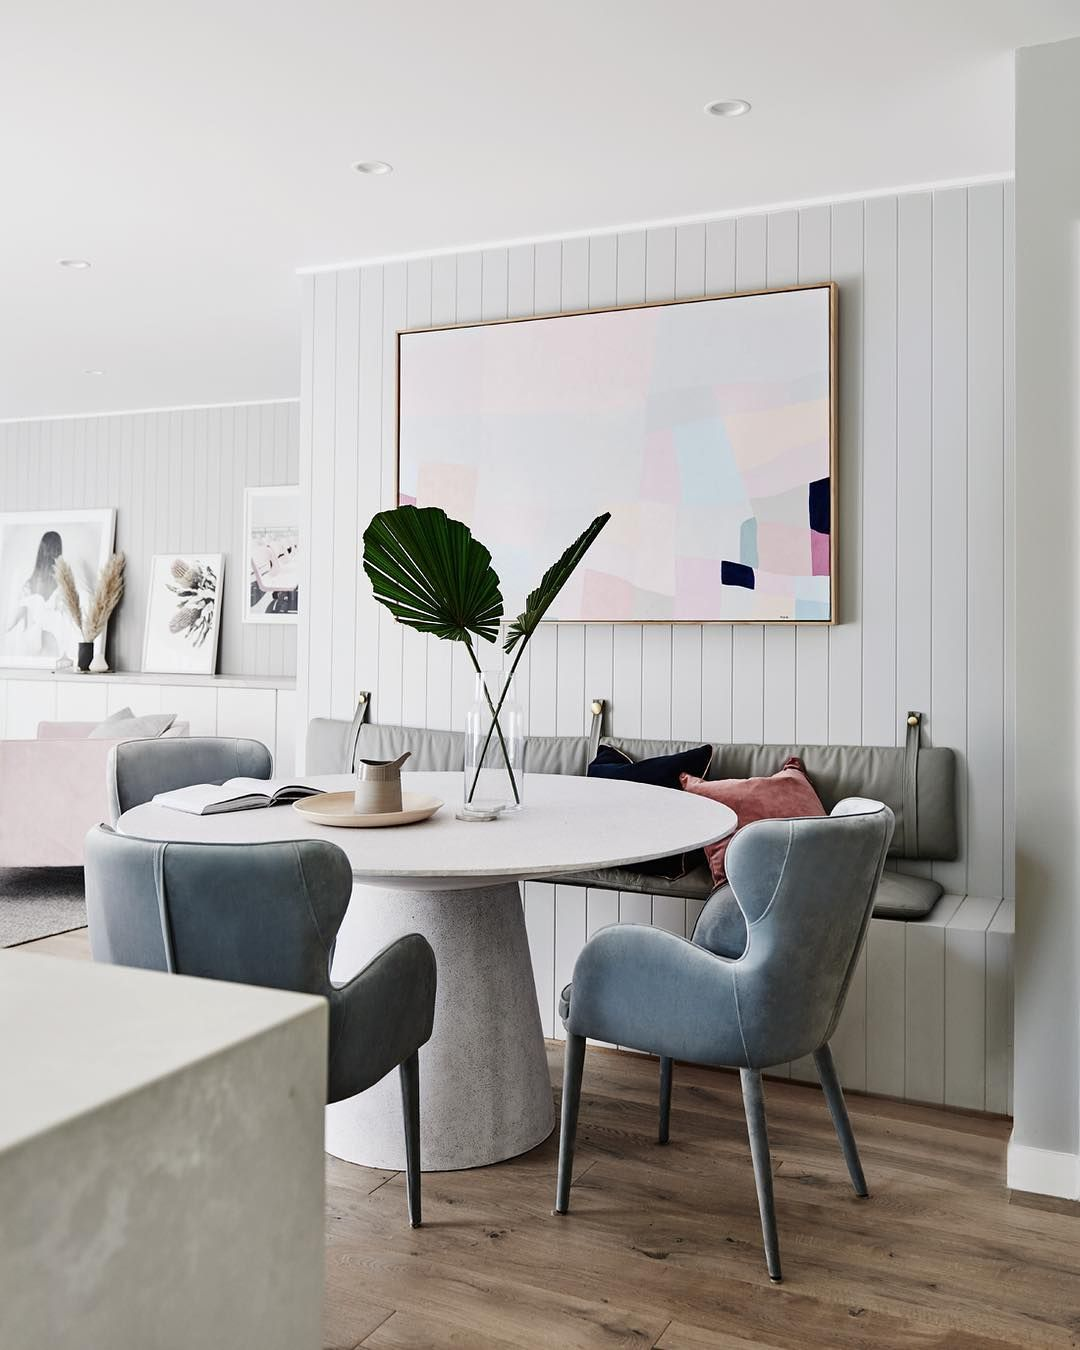 Pin By Caroline Guedes On Sala De Jantar In 2020 Dining Table With Bench Dining Room Bench Dining Room Design